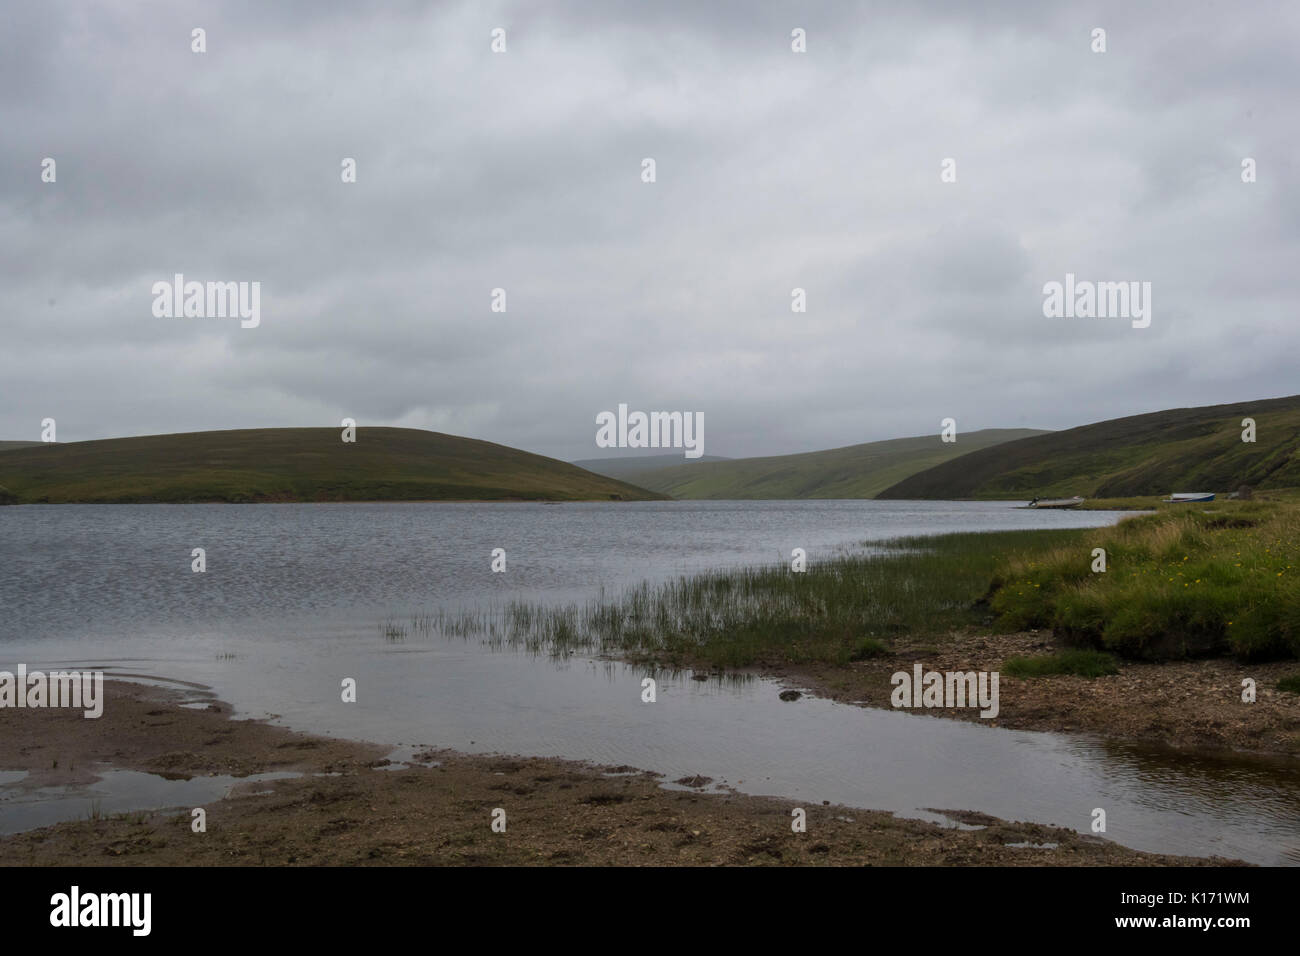 Loch of cliff, Unst - Stock Image